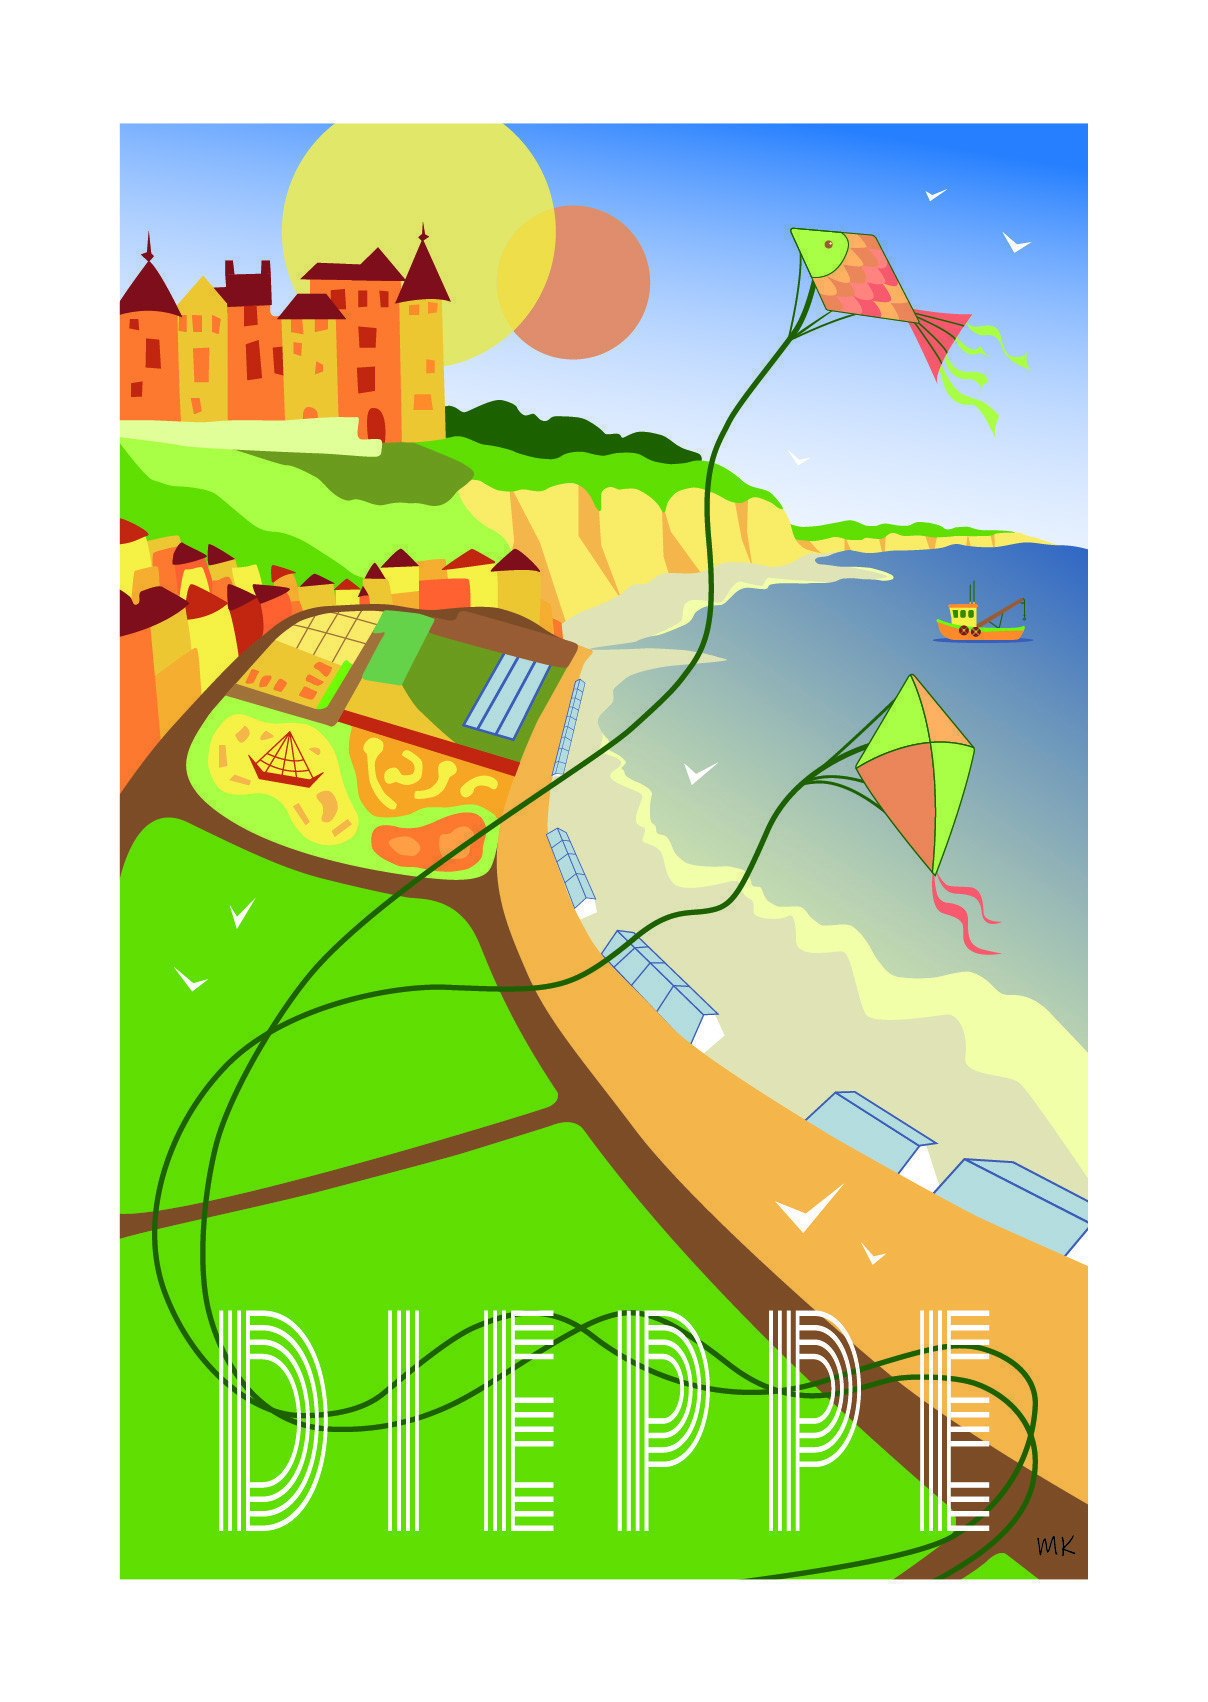 Mary Opax created this Dieppe poster and intends to get others on the road.